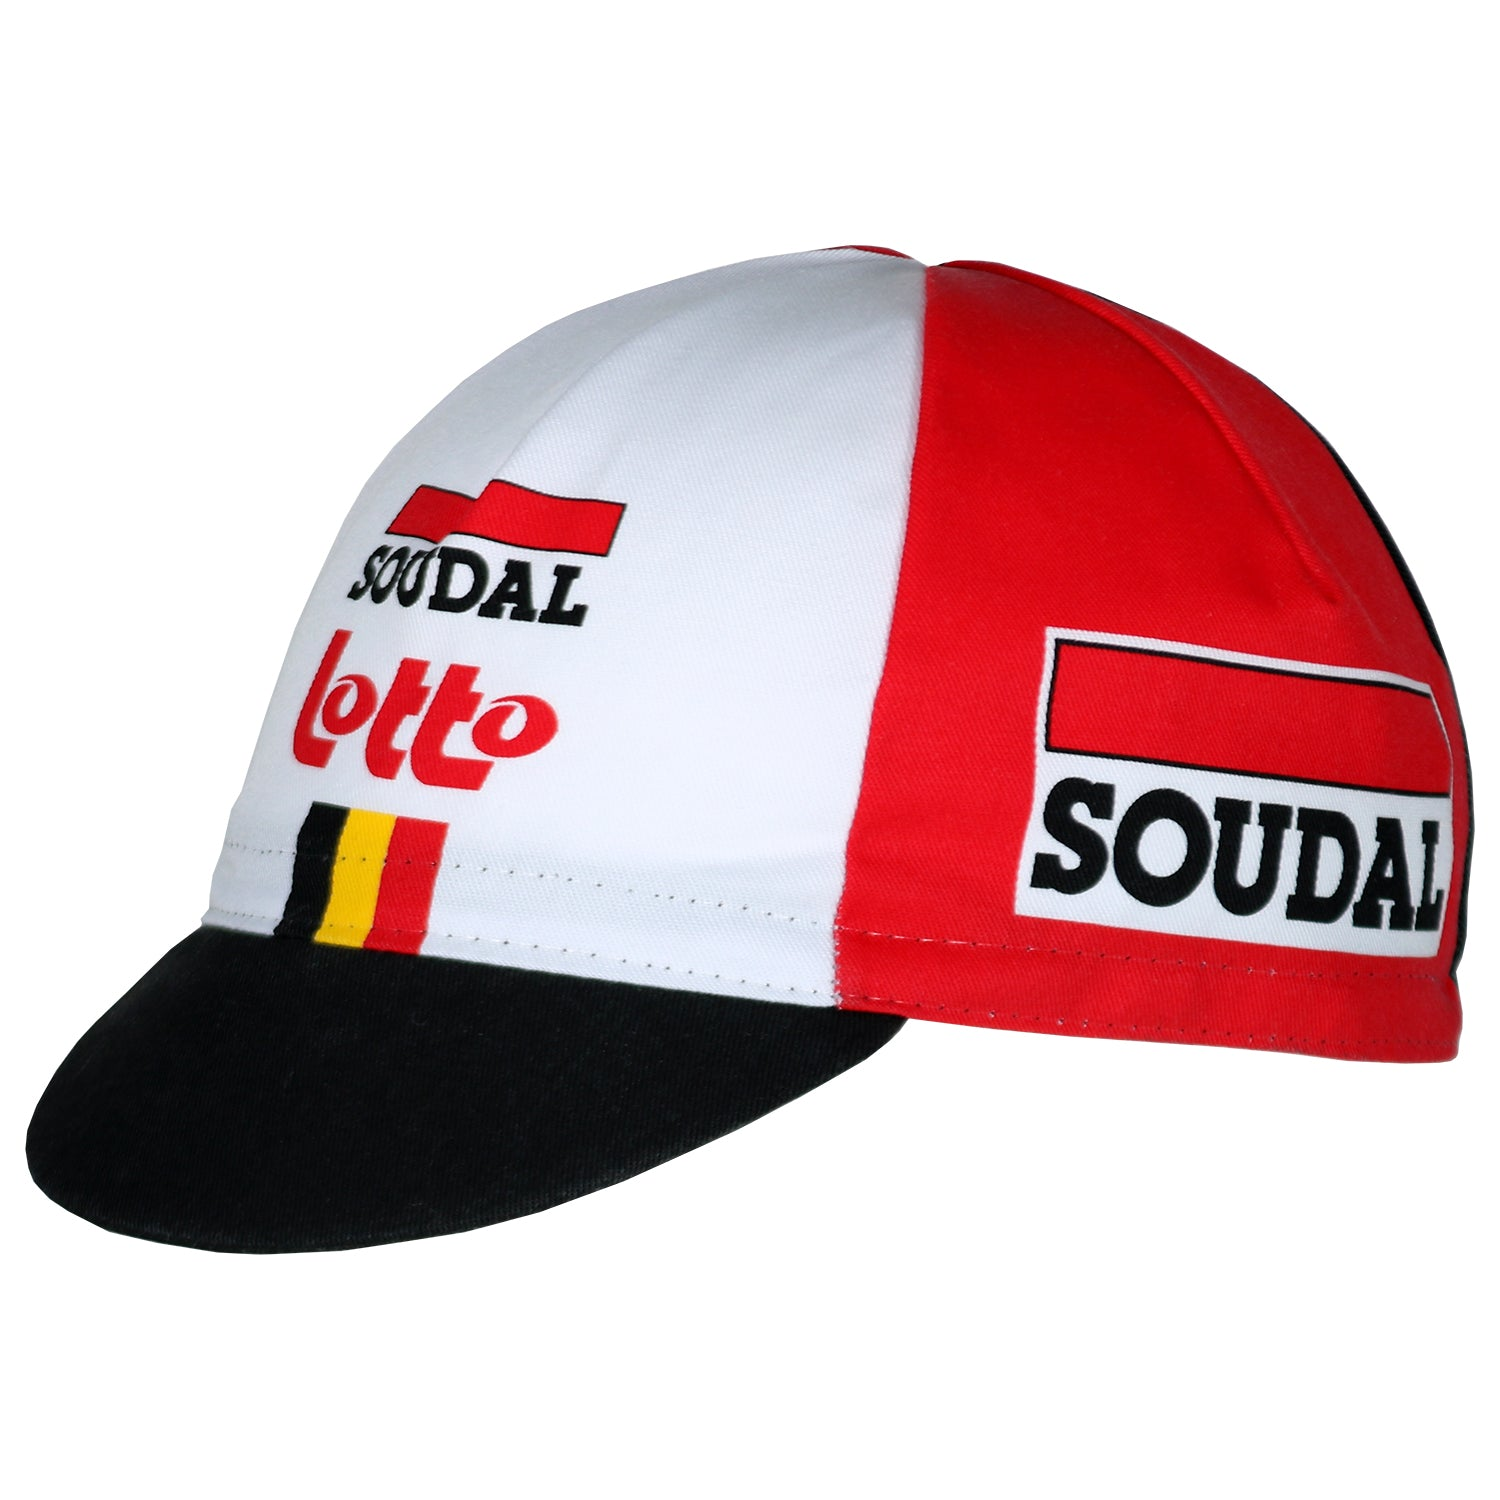 Lotto Soudal 2020 Cycling Cap